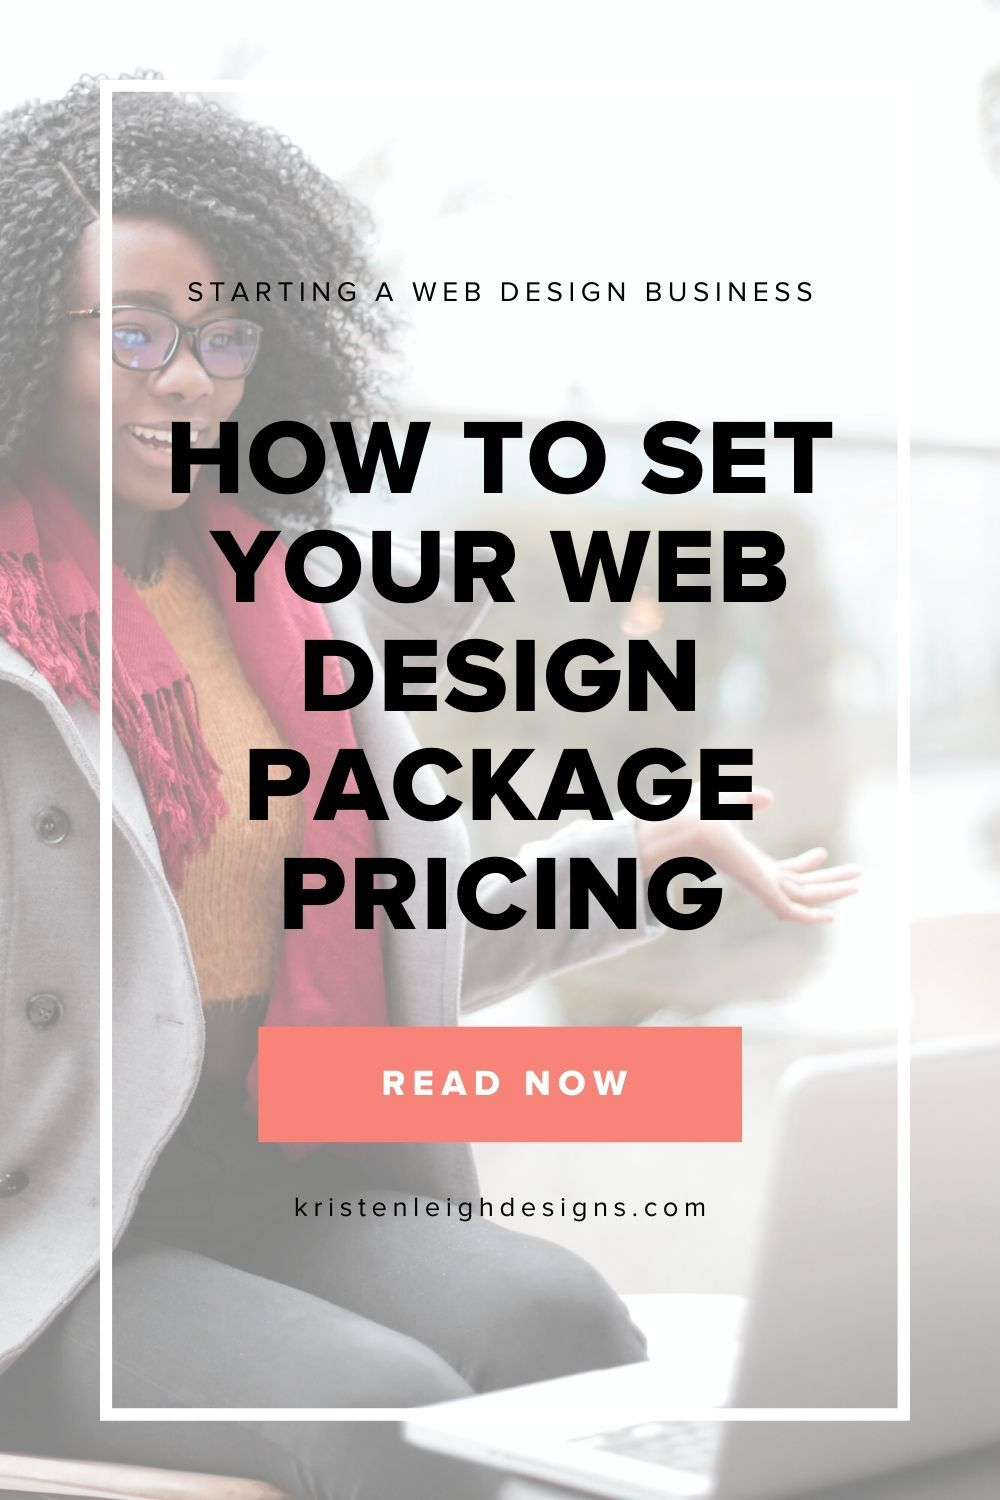 How Much You Should Charge To Build A Website Kristen Leigh Designs In 2021 Start Online Business Best Business To Start Web Design